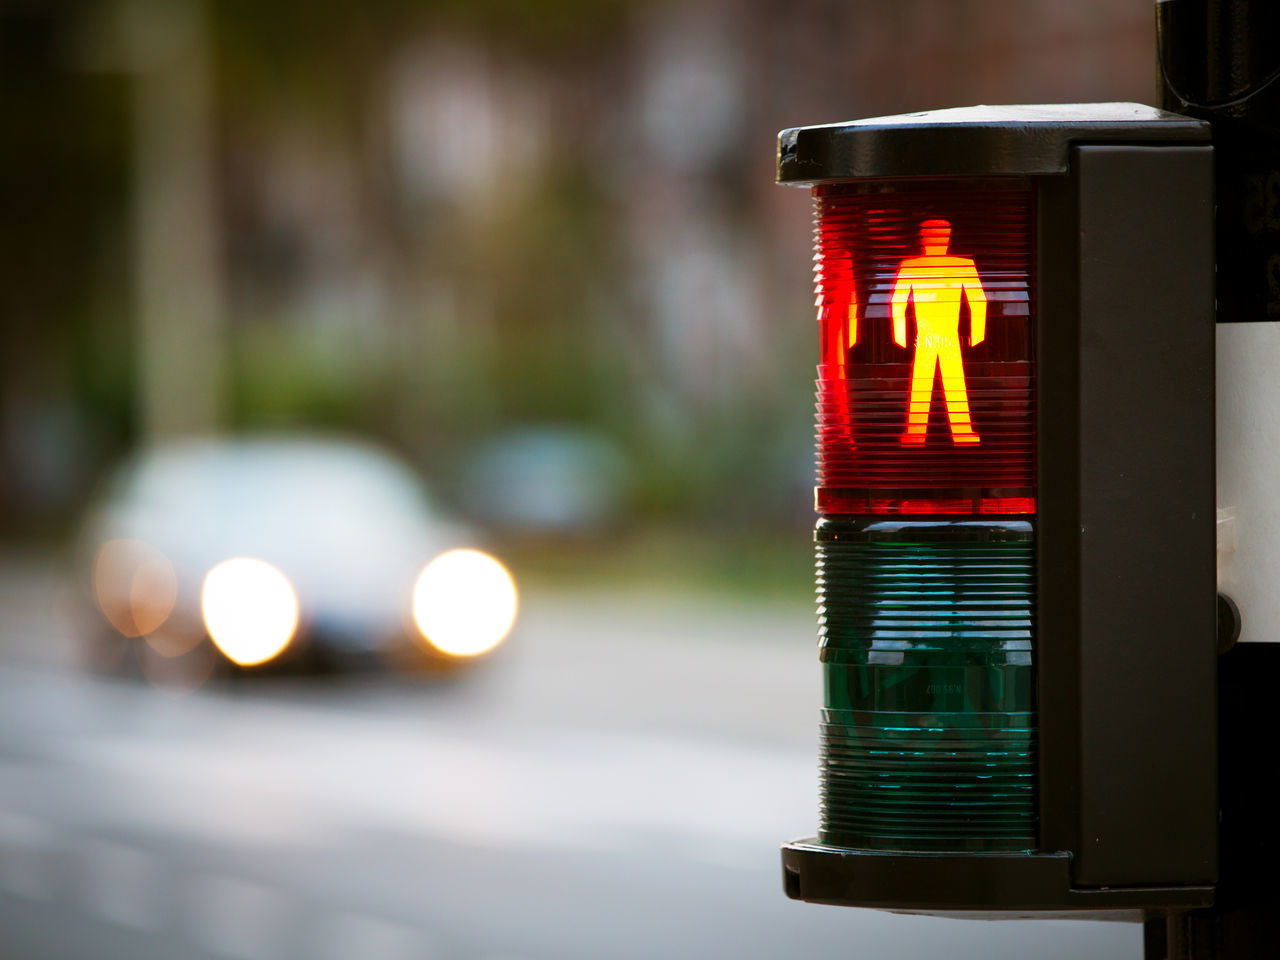 Blurred Background Car Danger Day Driving Lights No People Outdoors Pedestrian Crossing Pedestrian Trafficlight Red Light Street Traffic Traffic Lights Twilight Urban Waiting